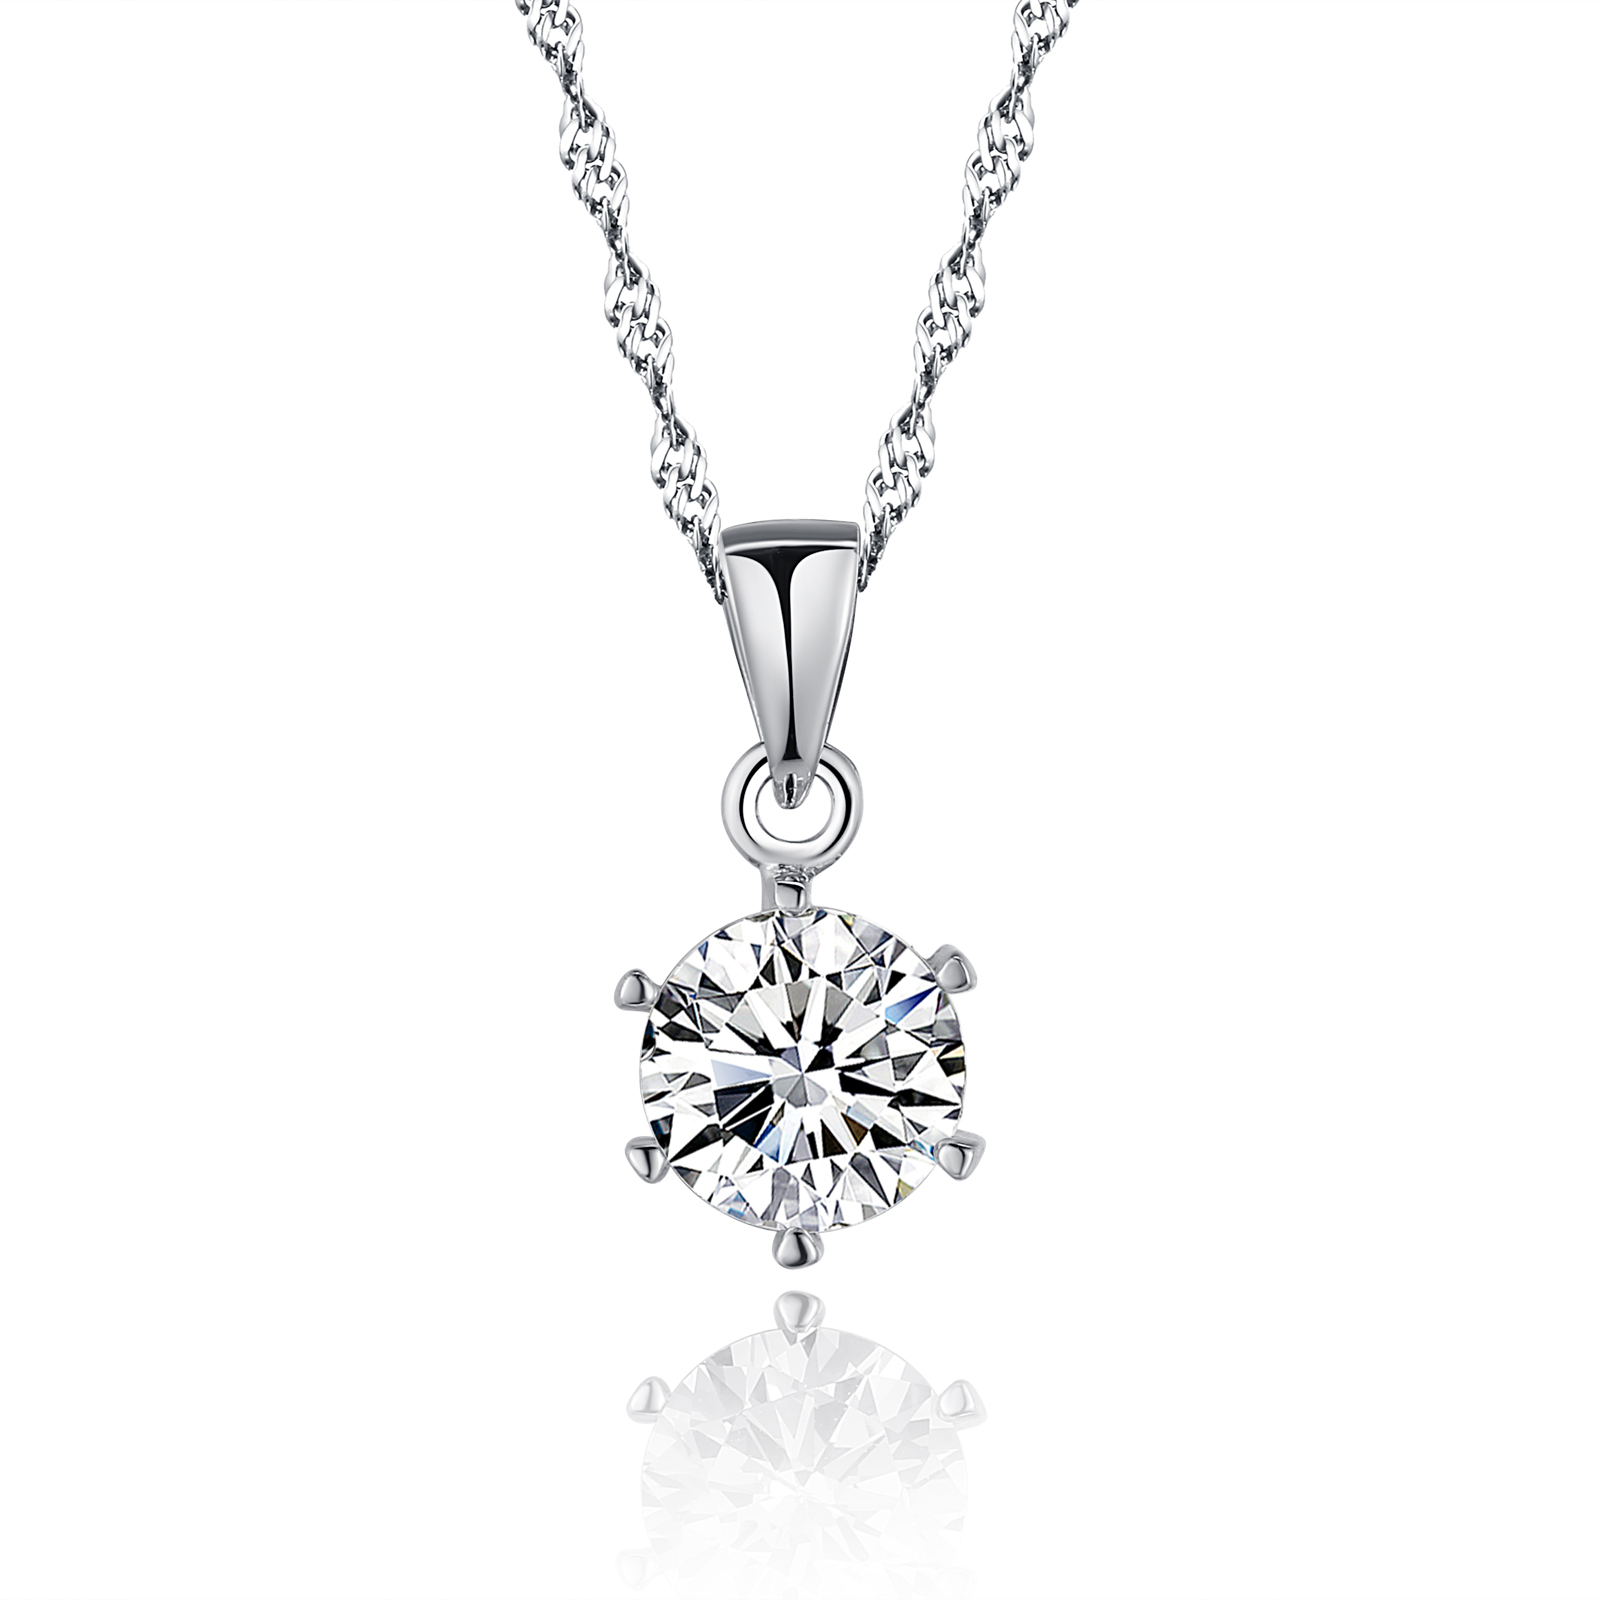 Sterling 925 silver love pendant necklace jewelry set with cubic sterling 925 silver love pendant necklace jewelry set with cubic zirconia cz gemstone diamonds pendant and aloadofball Gallery